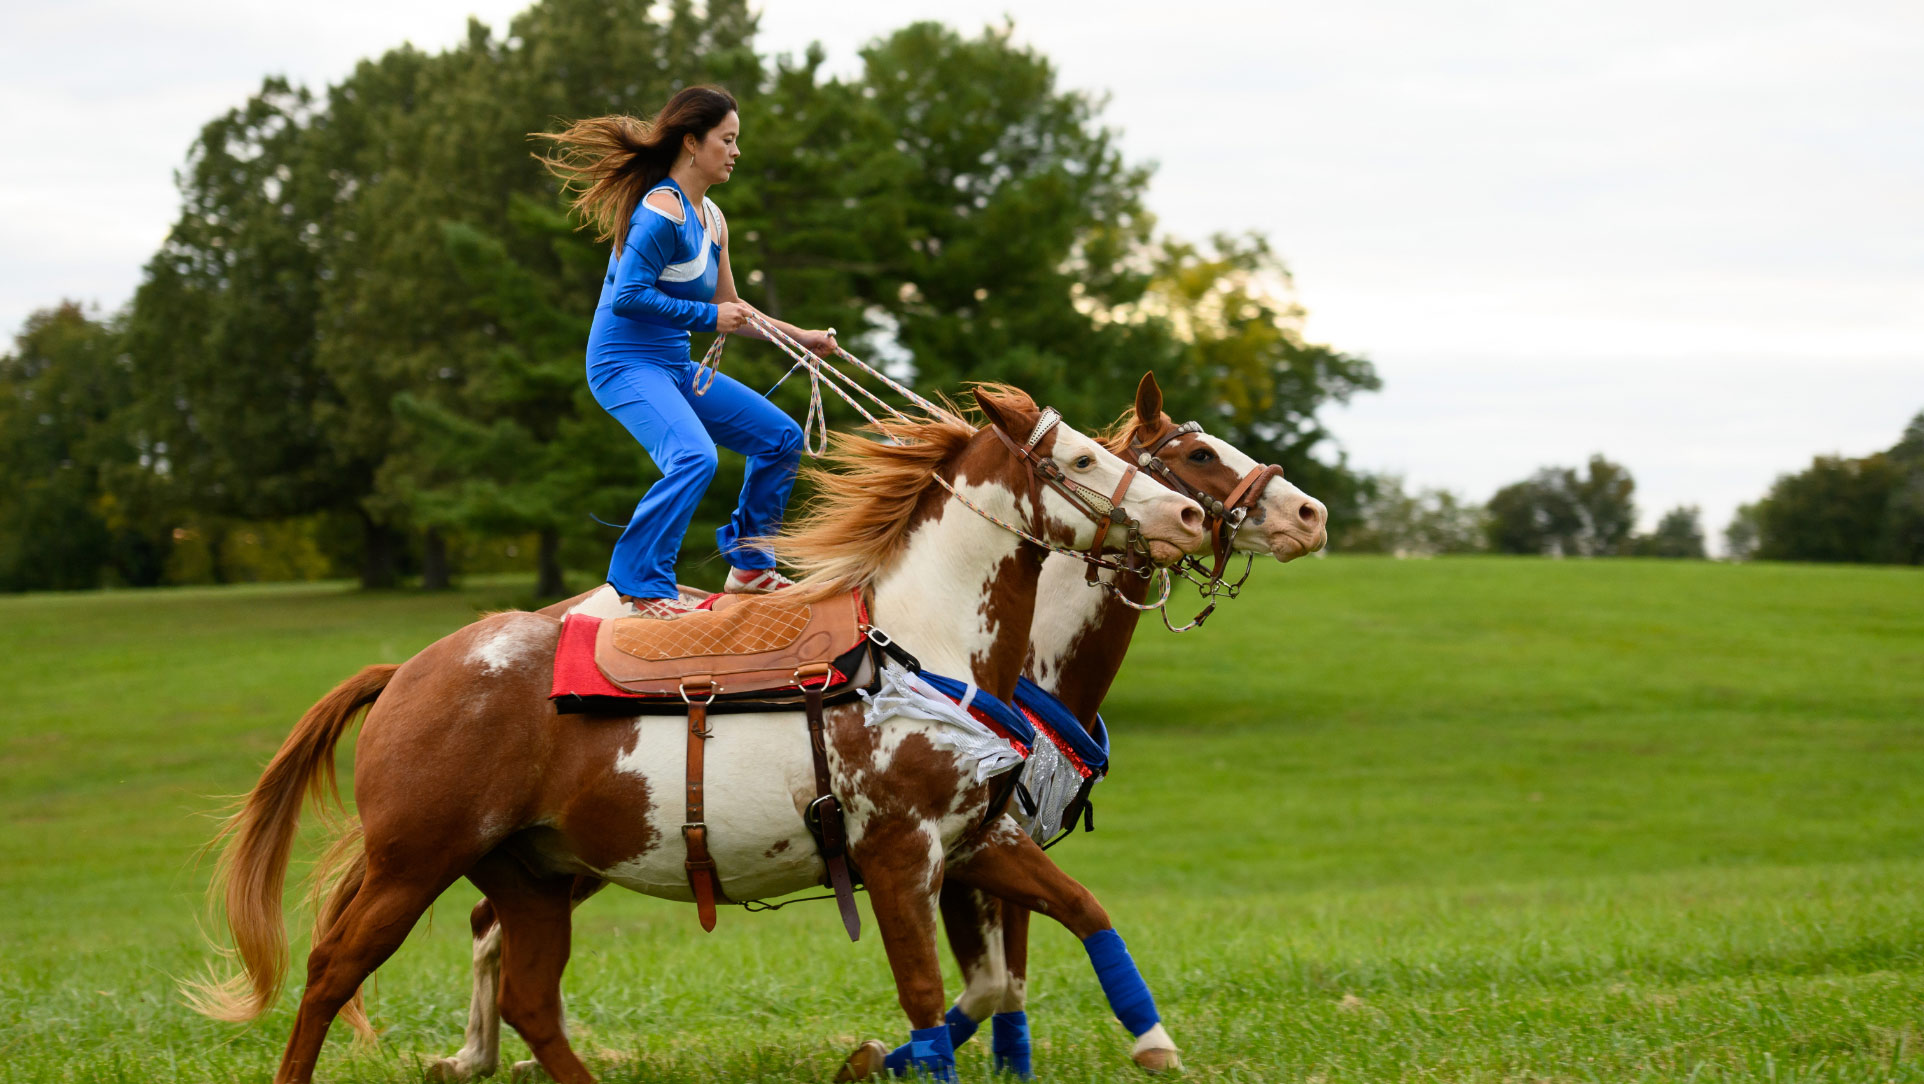 Miko stands atop two running horses, with a foot on each horse's saddle. They are running in a field.